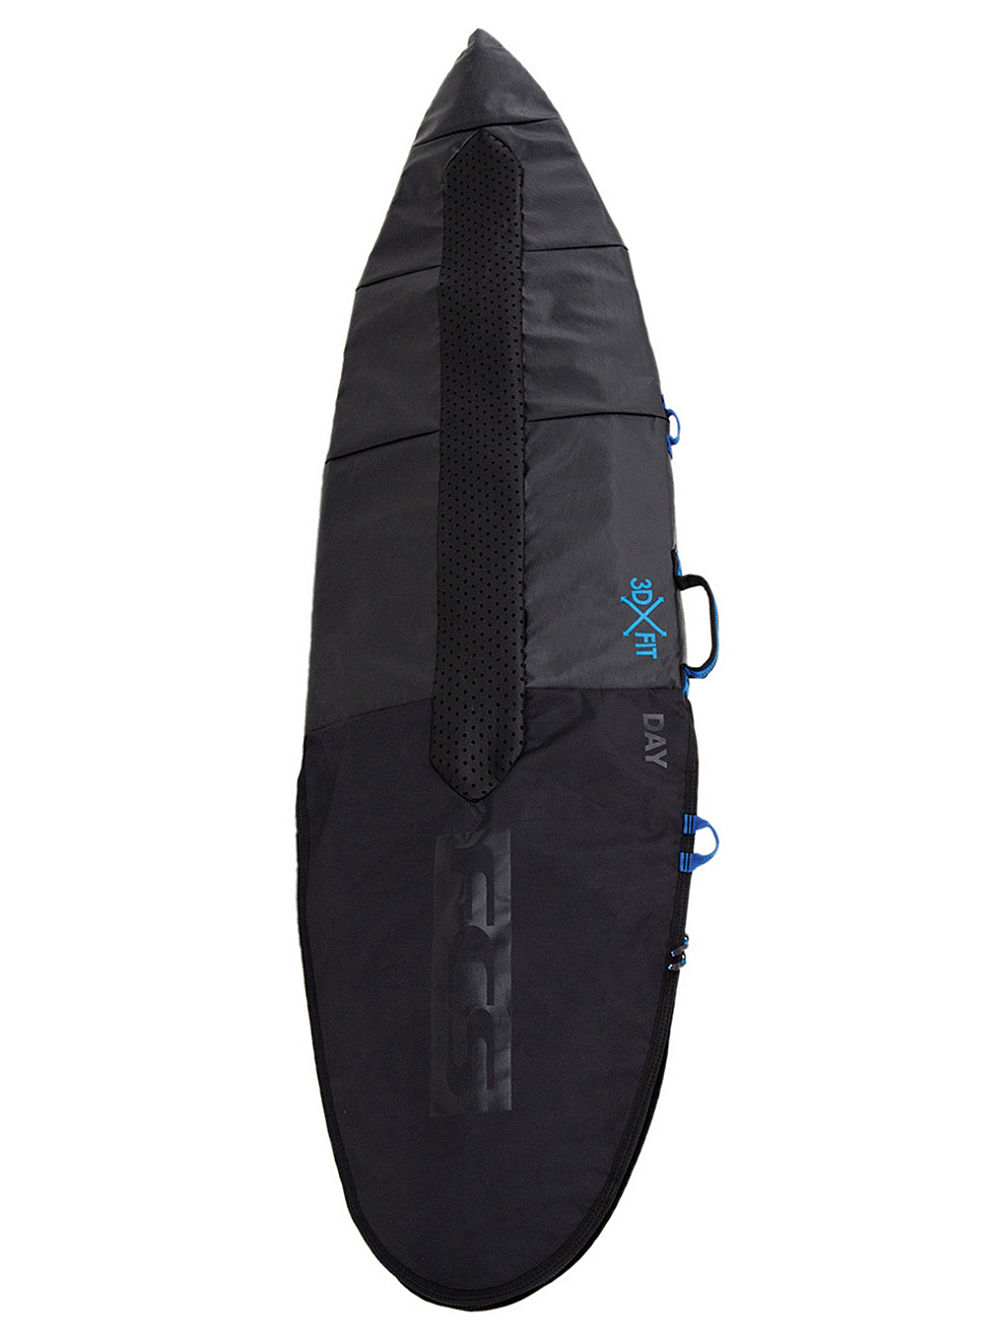 Day All Purpose 6'0 Surfboardtasche